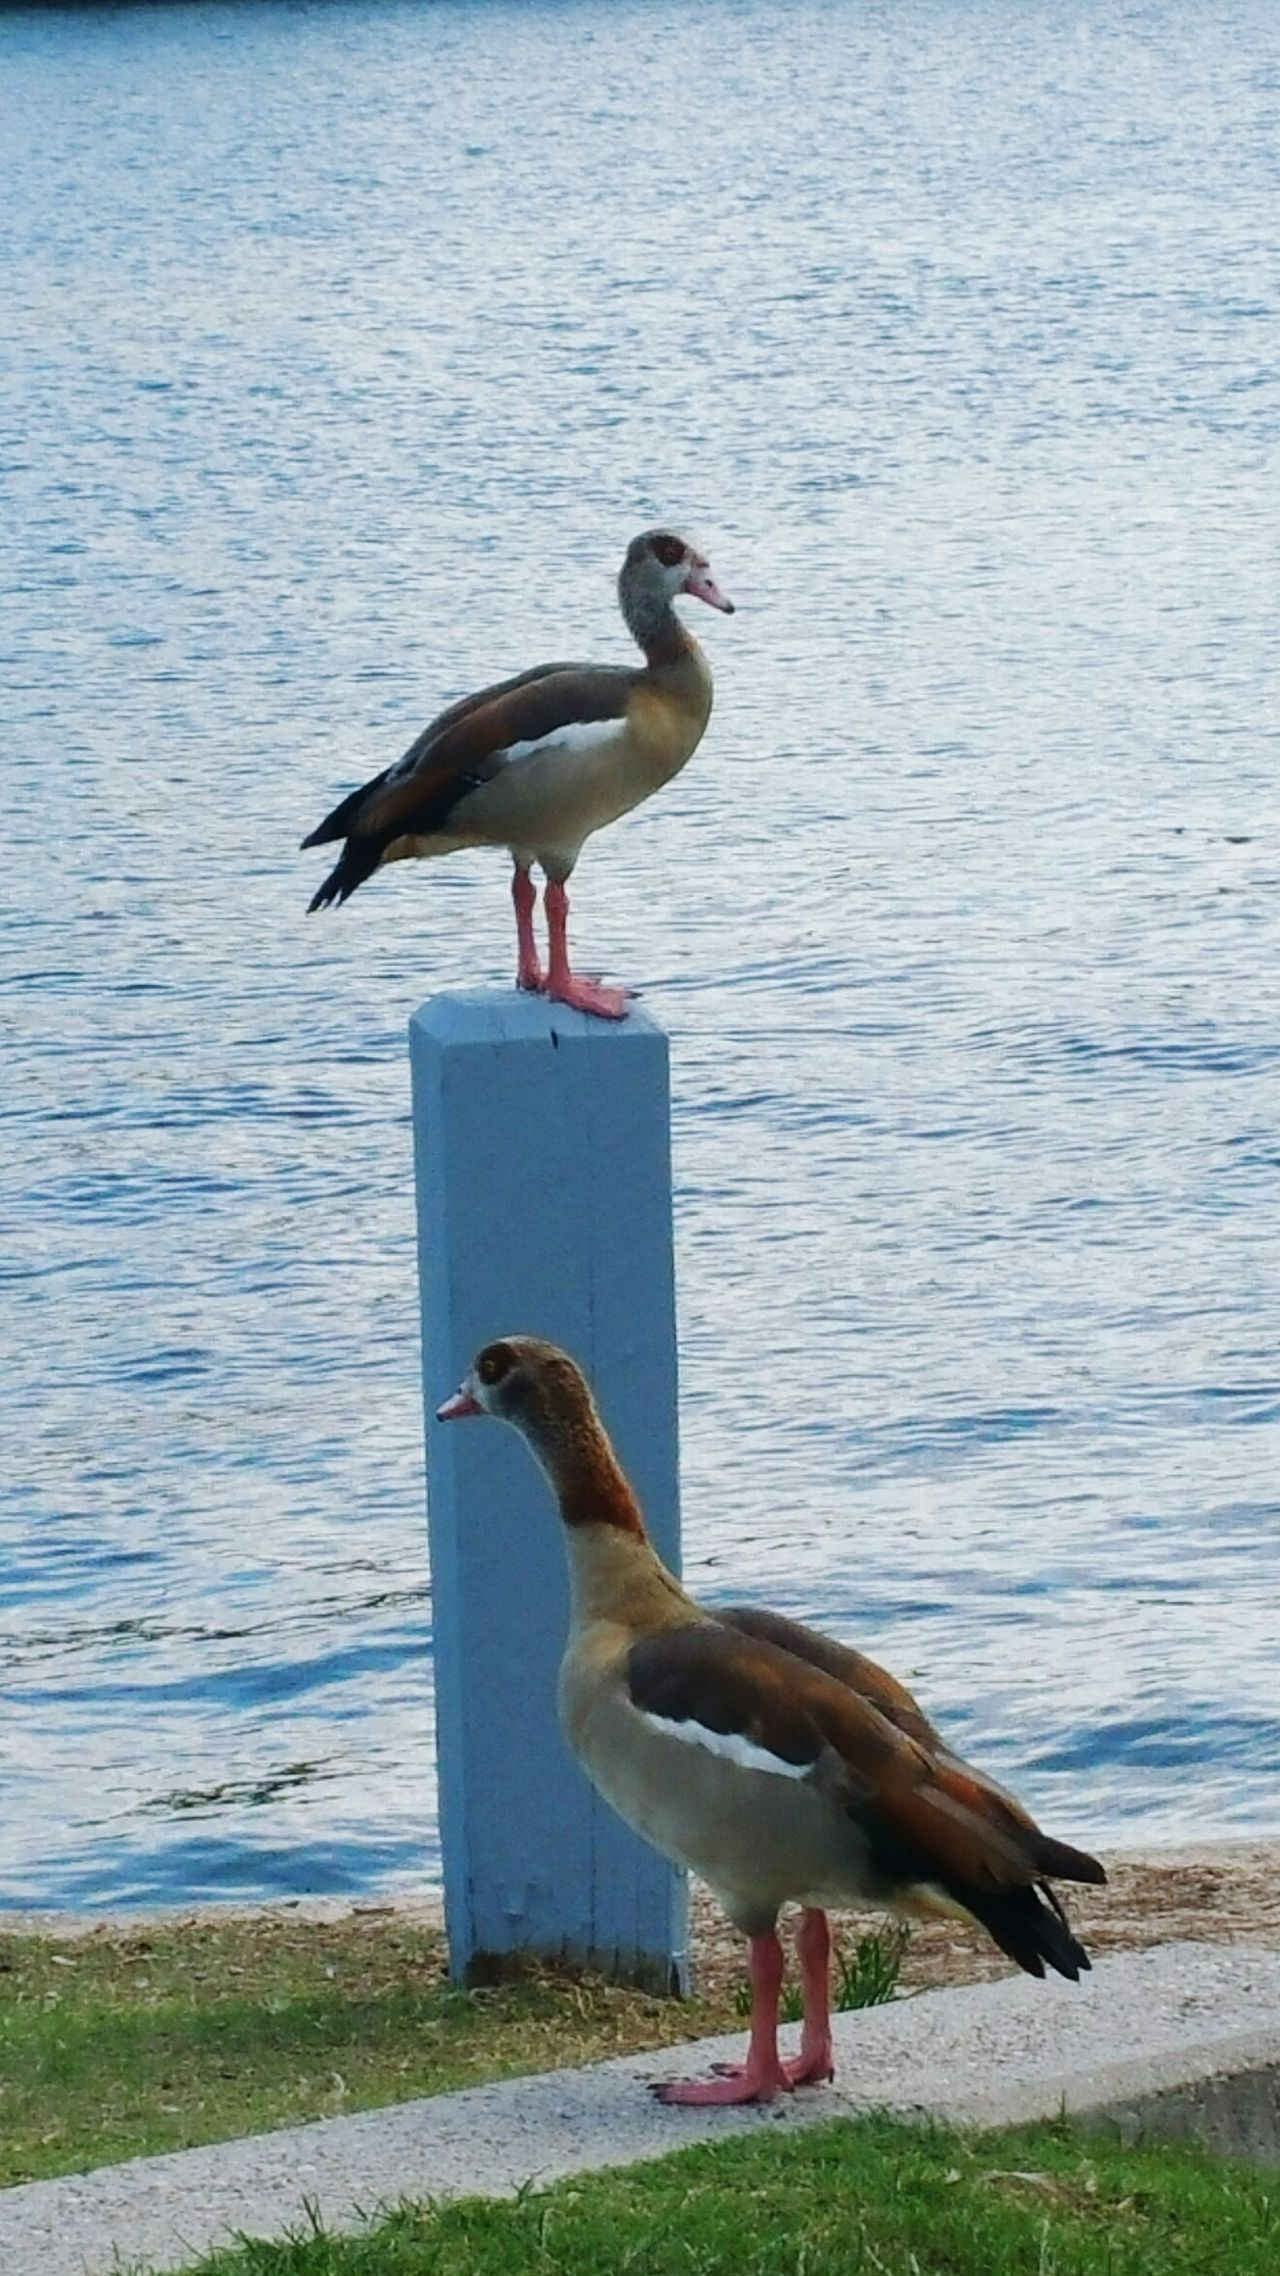 It got up there to pose for pics😄 Animals In The Wild Bird Animal Themes Wildlife Water Lake Nature Perching Water Bird Outdoors Beauty In Nature No People Feathers Colorful Popularphotos EyeemPhotos Photography The Woodlands Tx Posing Egyptian Goose